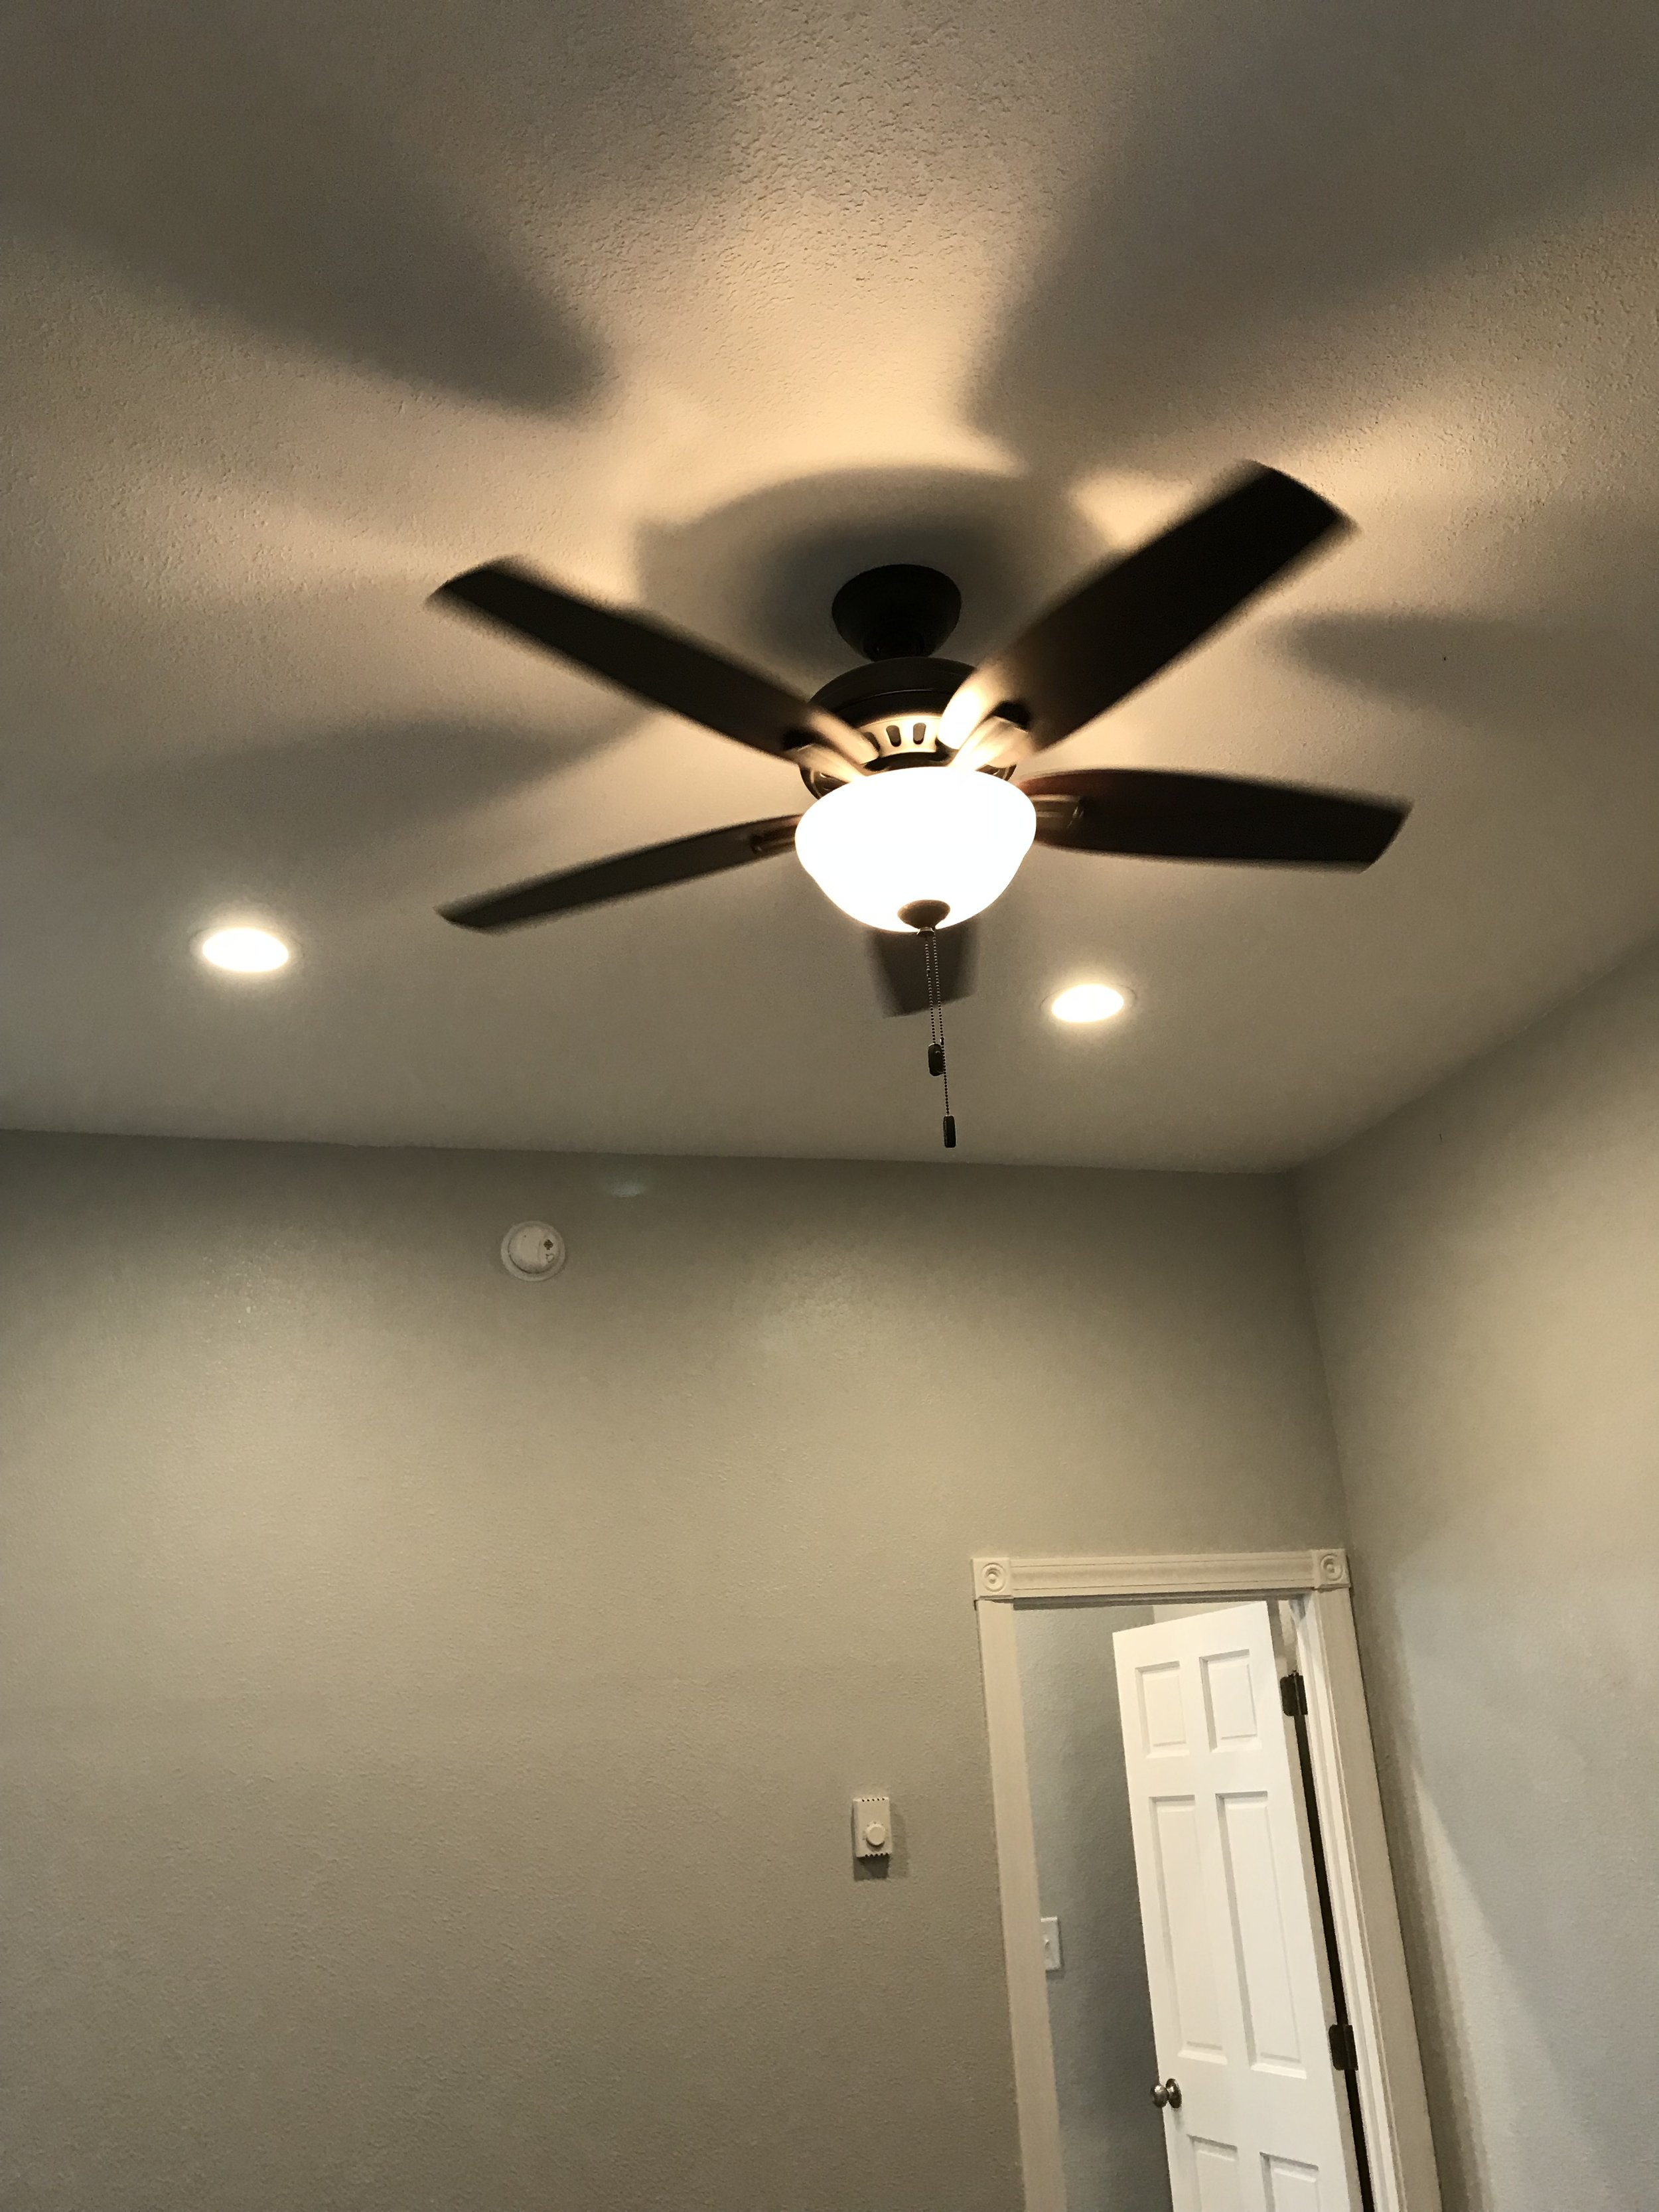 Ceiling fans and recessed lights